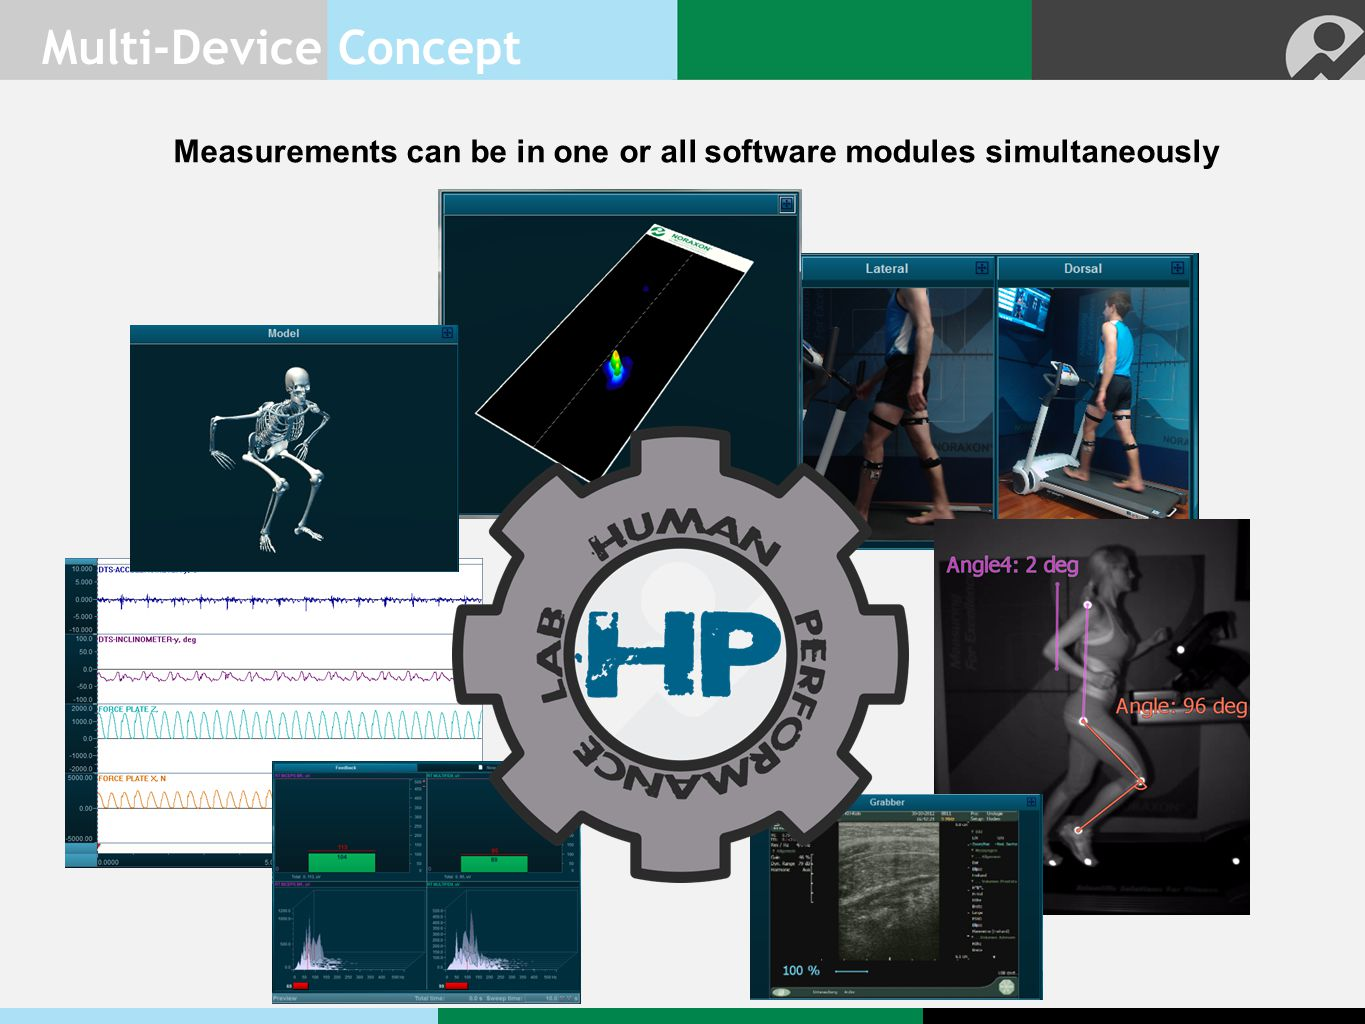 Multi-Device Concept Measurements can be in one or all software modules simultaneously